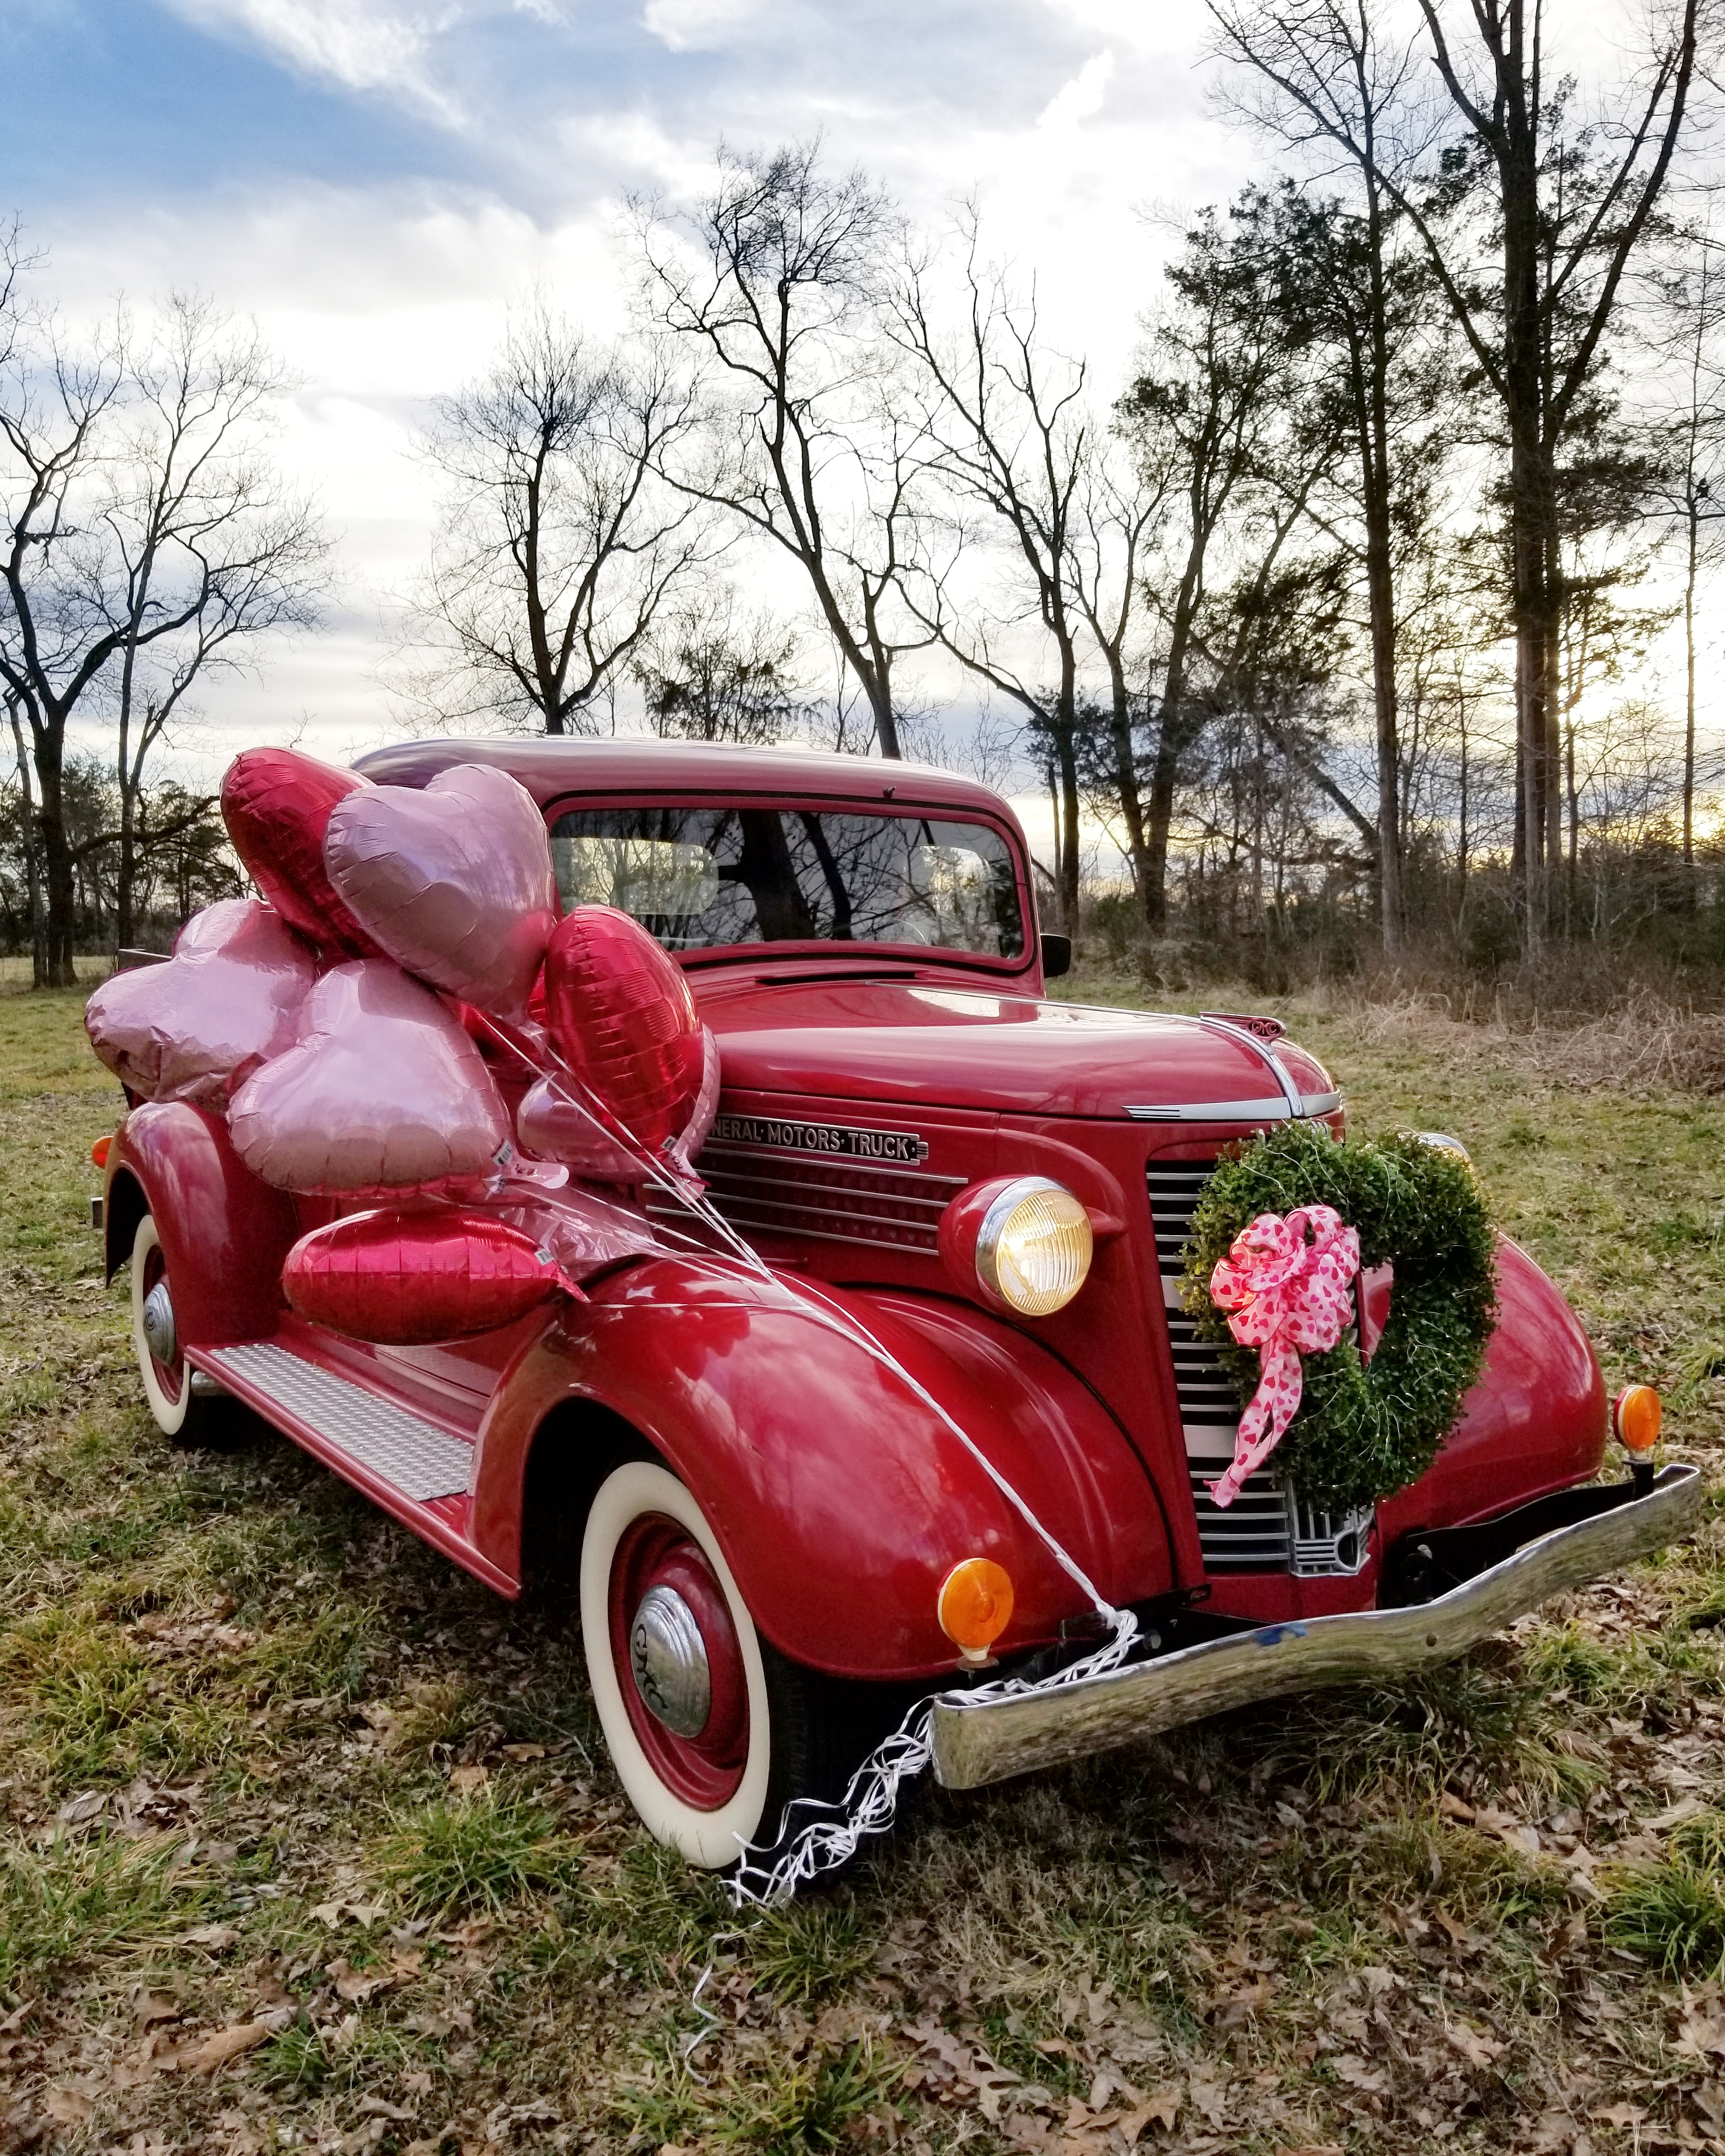 Vintage Red Truck and Valentine Balloons